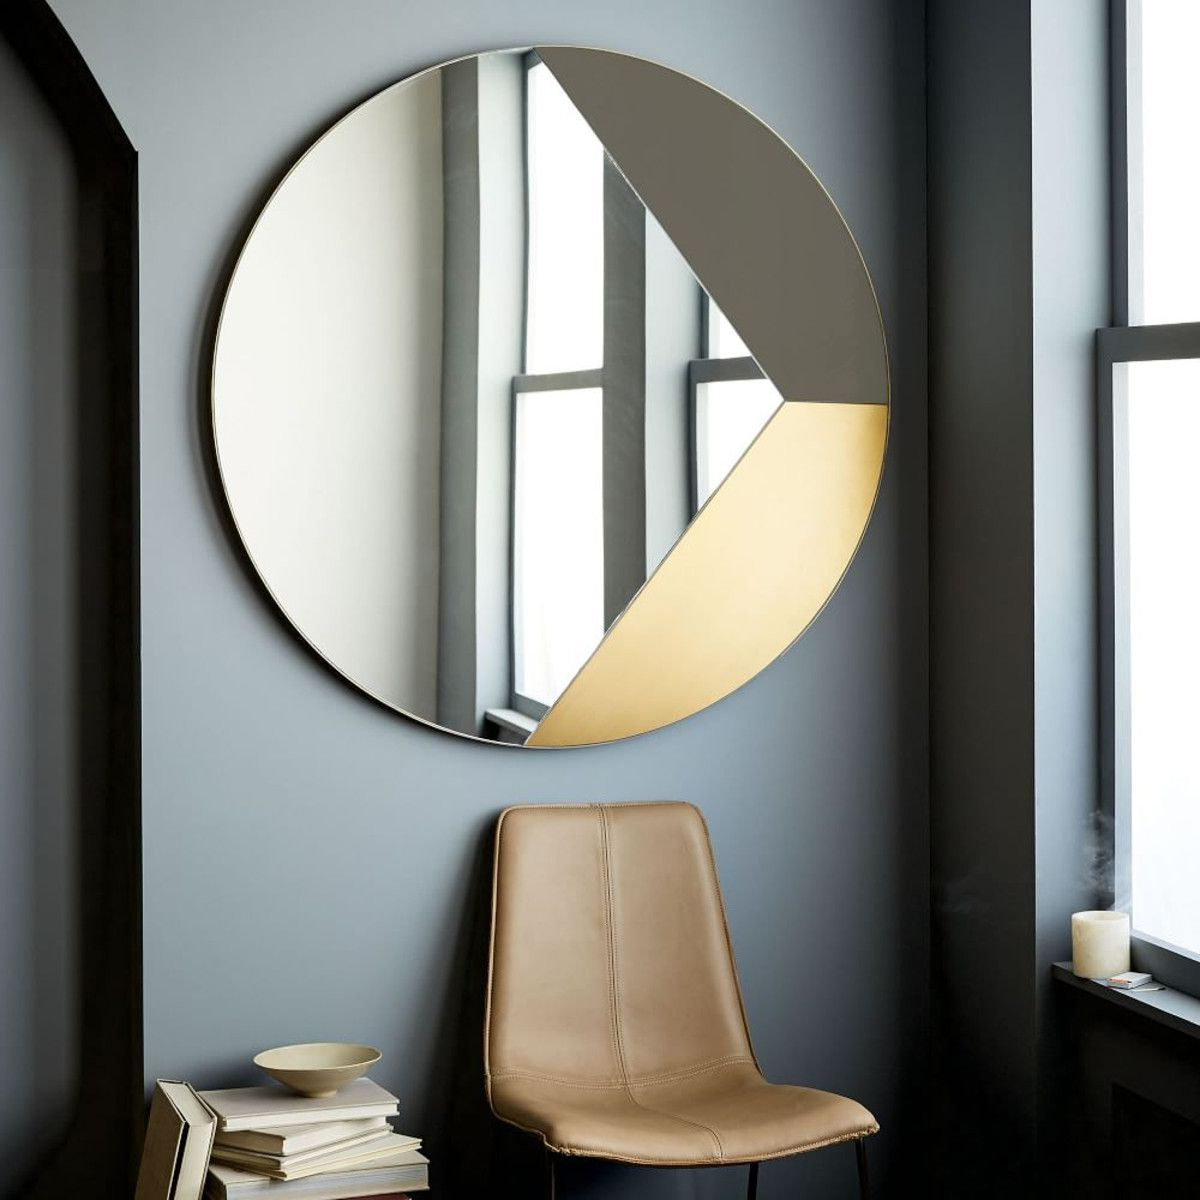 West Elm Wall Mirrors Within Most Up To Date Geo Shapes Wall Mirror – Selected For Entry Console (View 11 of 20)